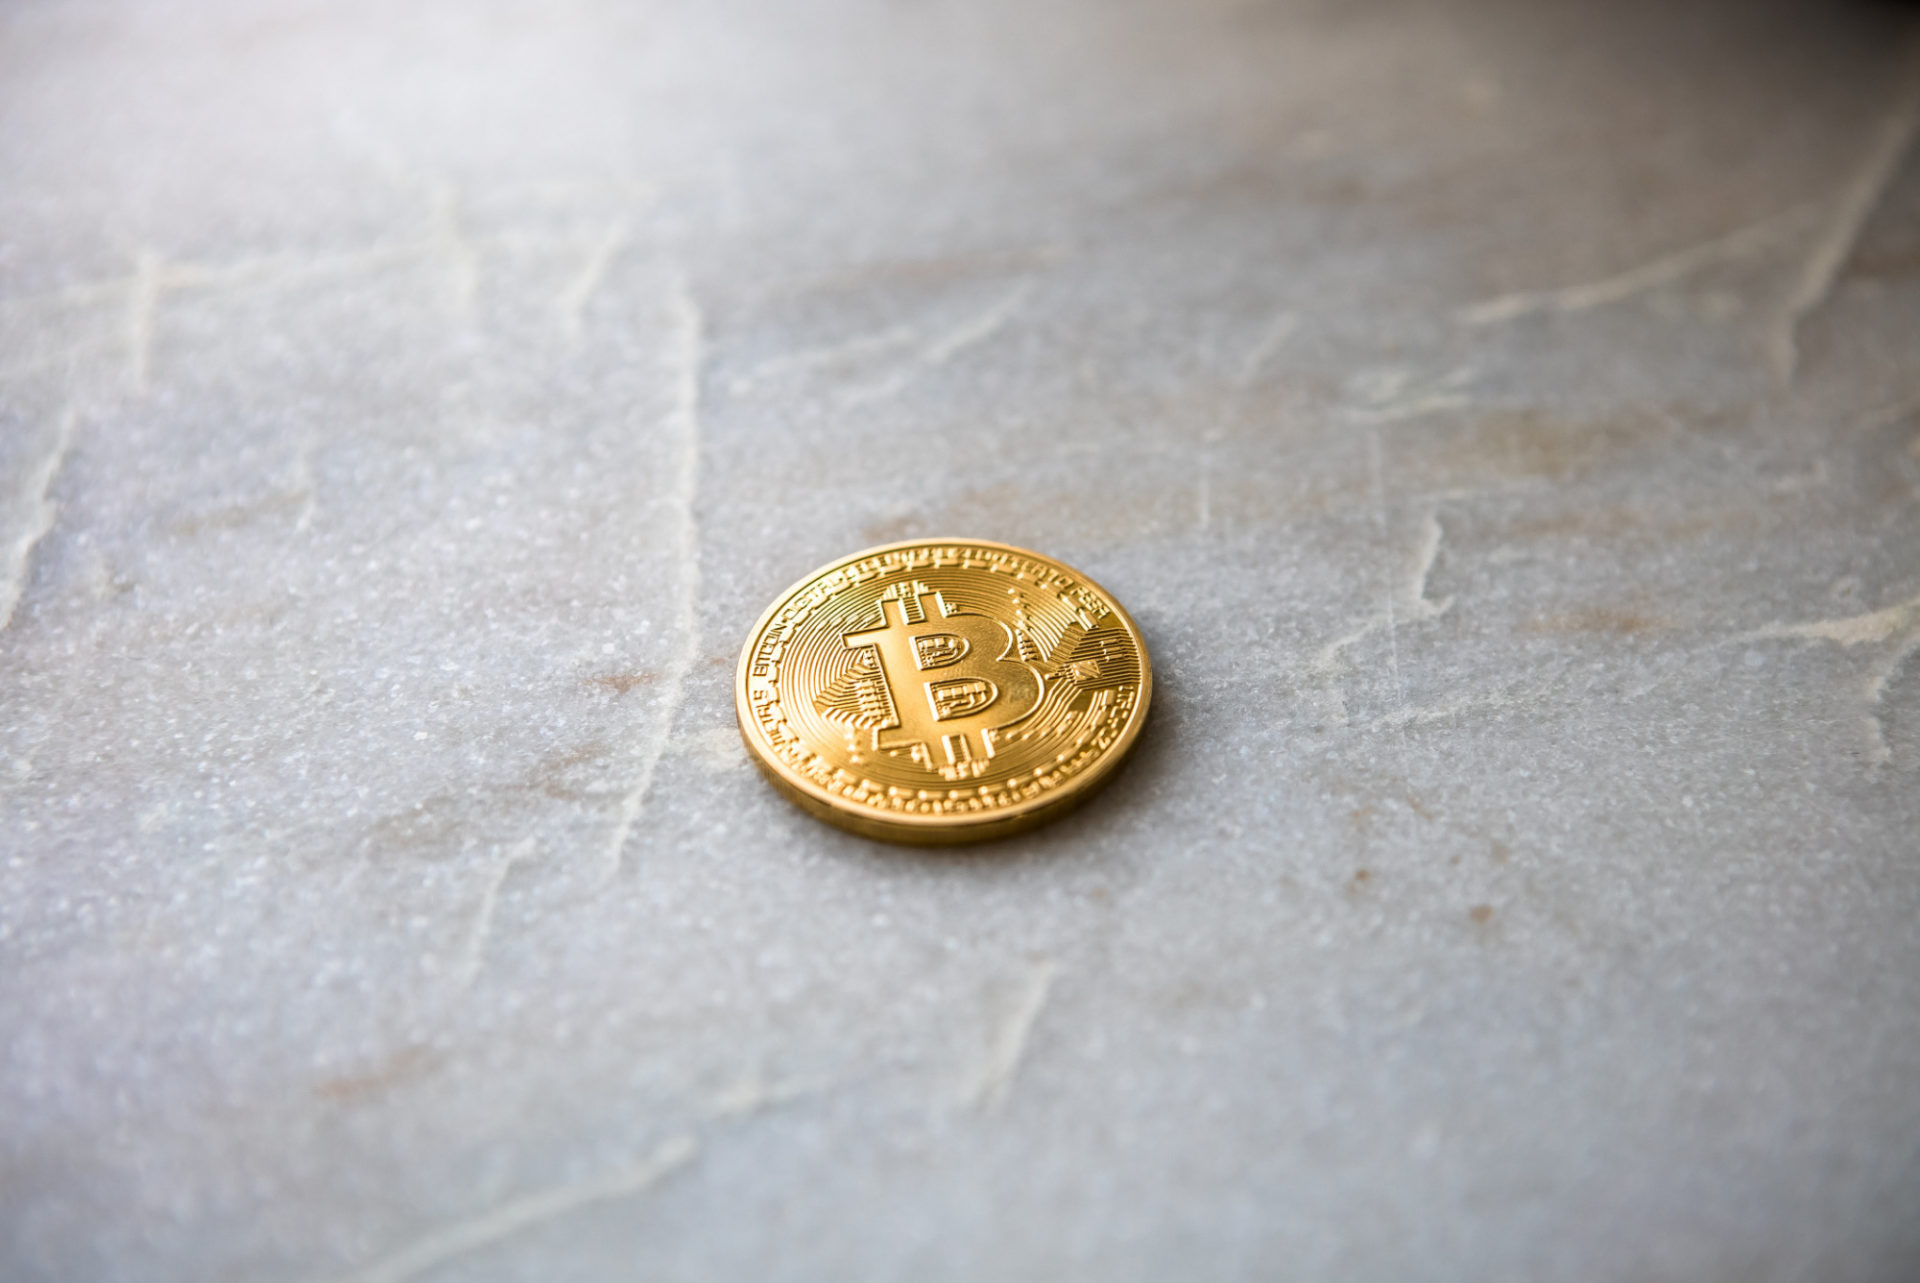 Bitcoin (BTC) Falls Under $3,900, Crypto Exchange CEO Unfazed 13